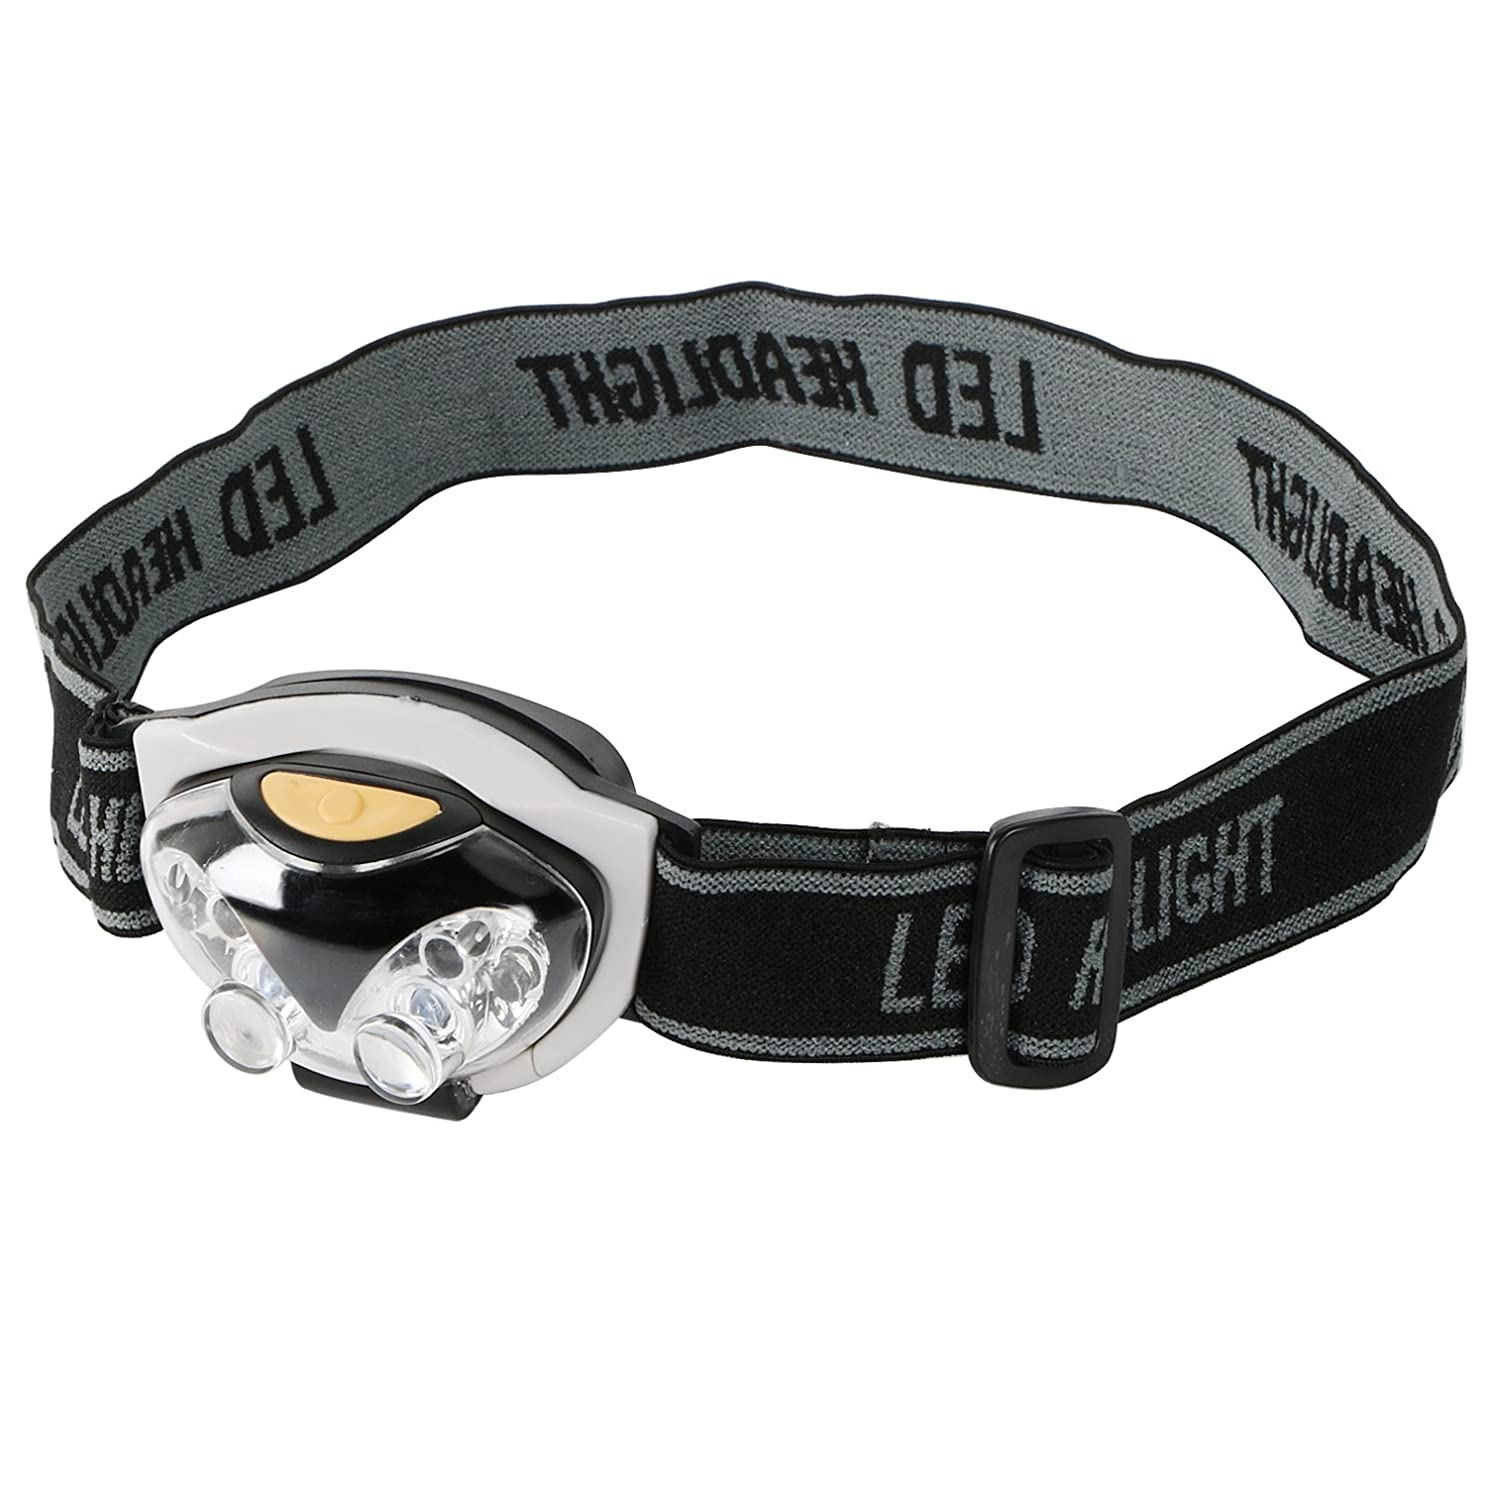 TRIXES 6 LED Adjustable Headband Light Camping Walking Hands Free Safety Torch